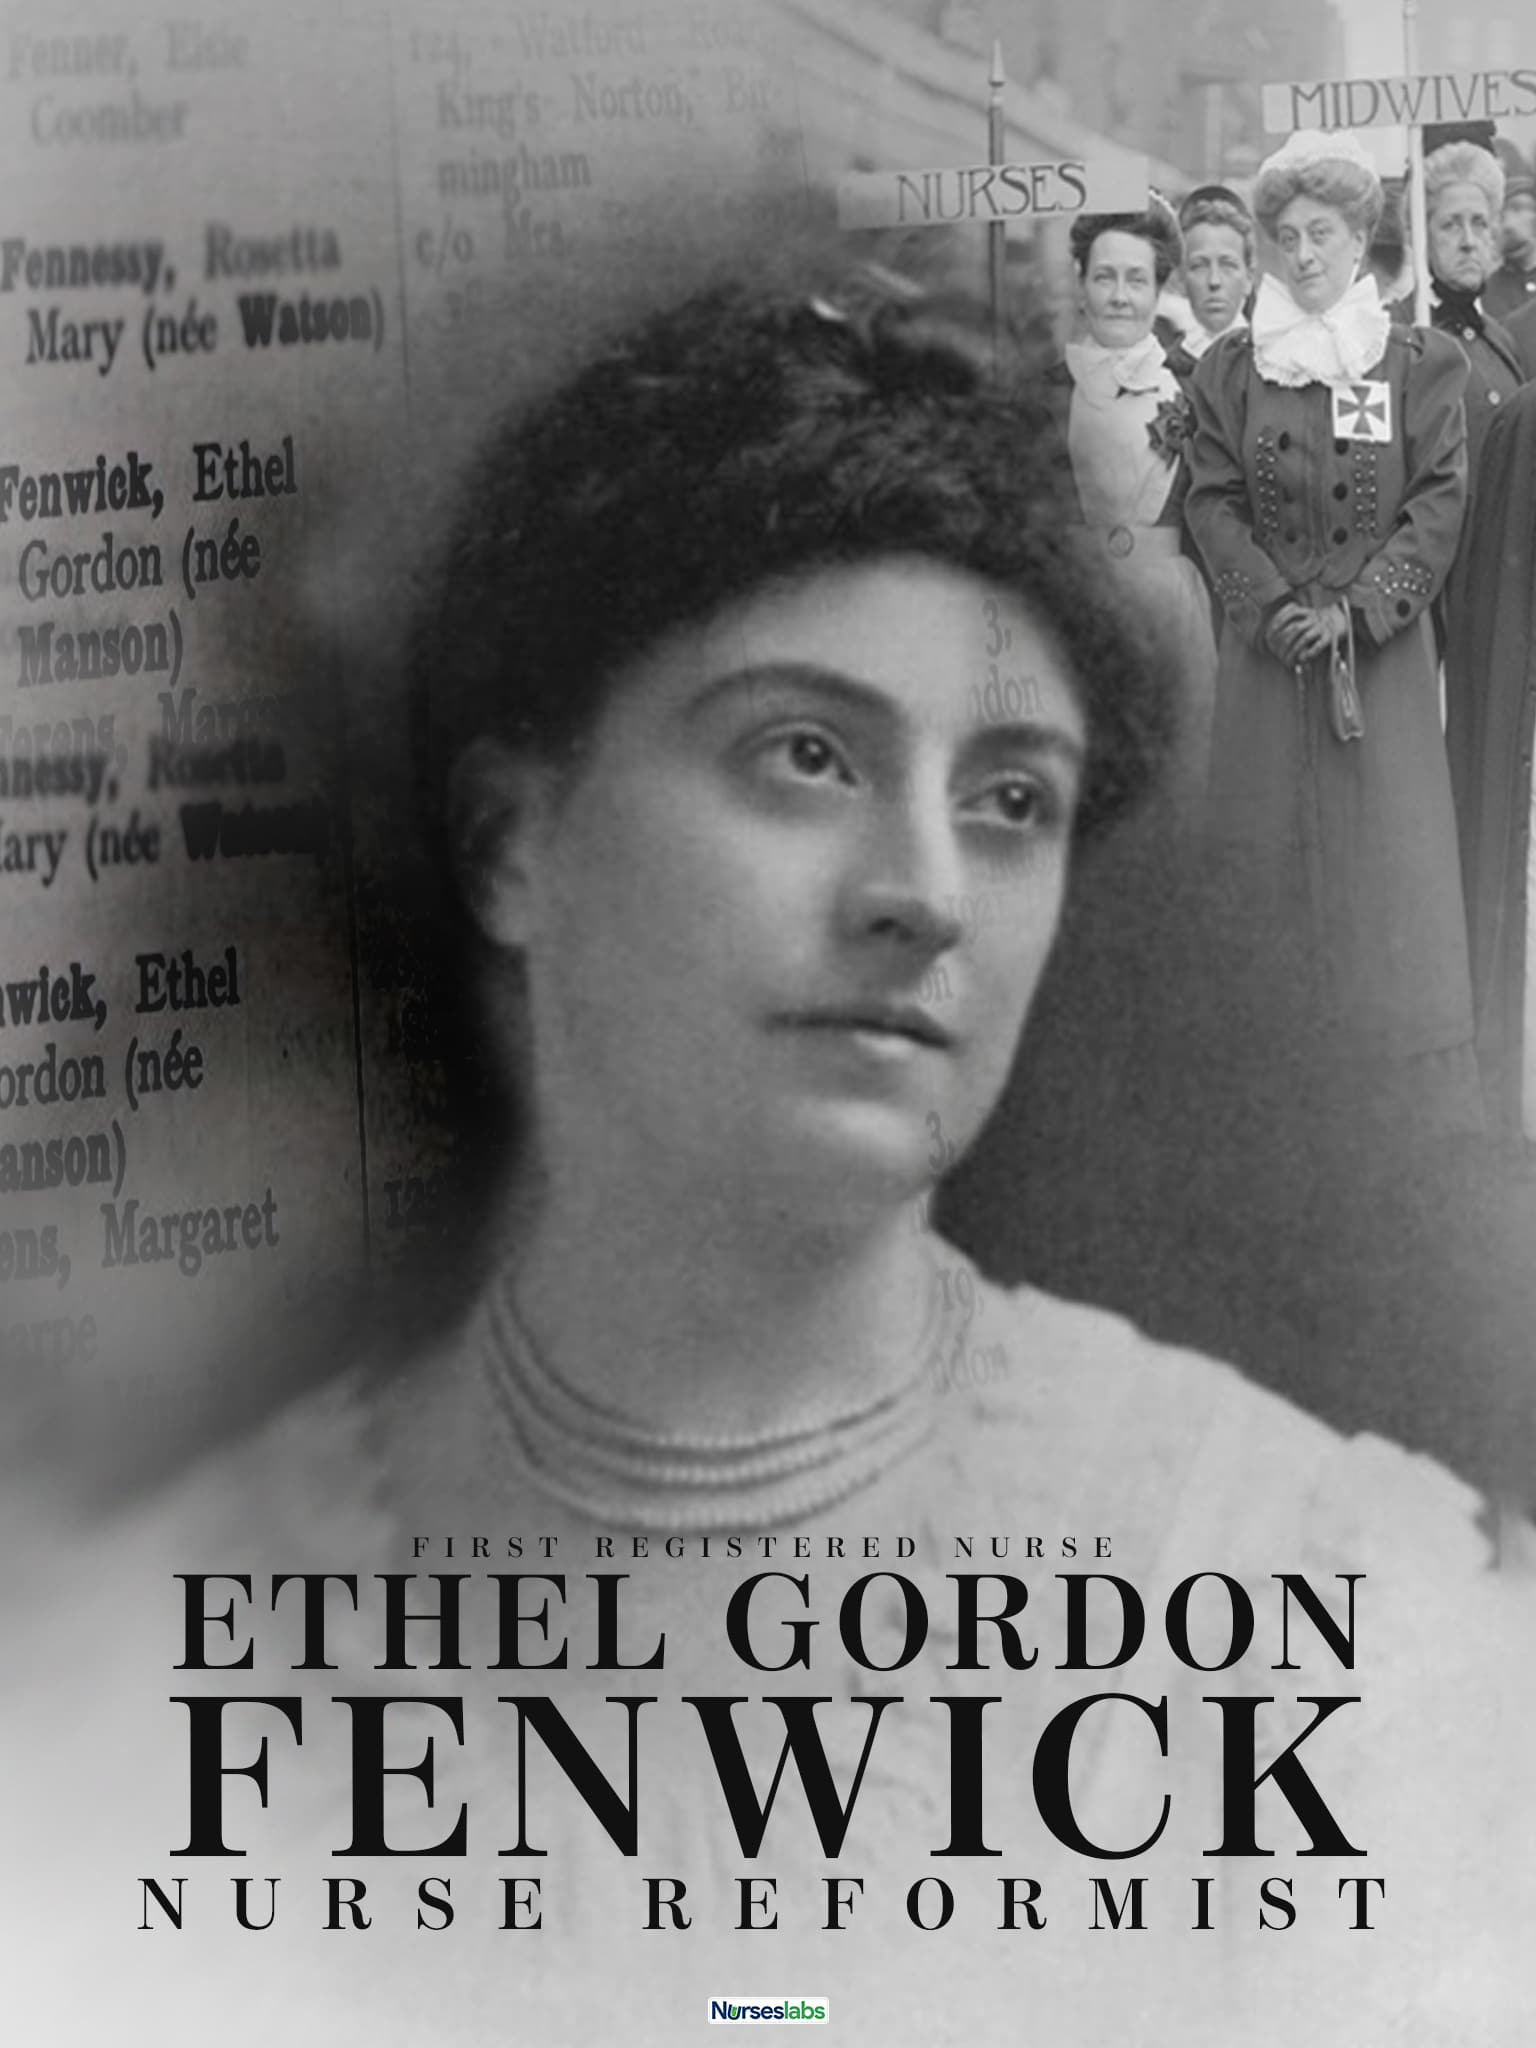 Ethel Gordon Fenwick: First Registered Nurse and Nurse Reformist